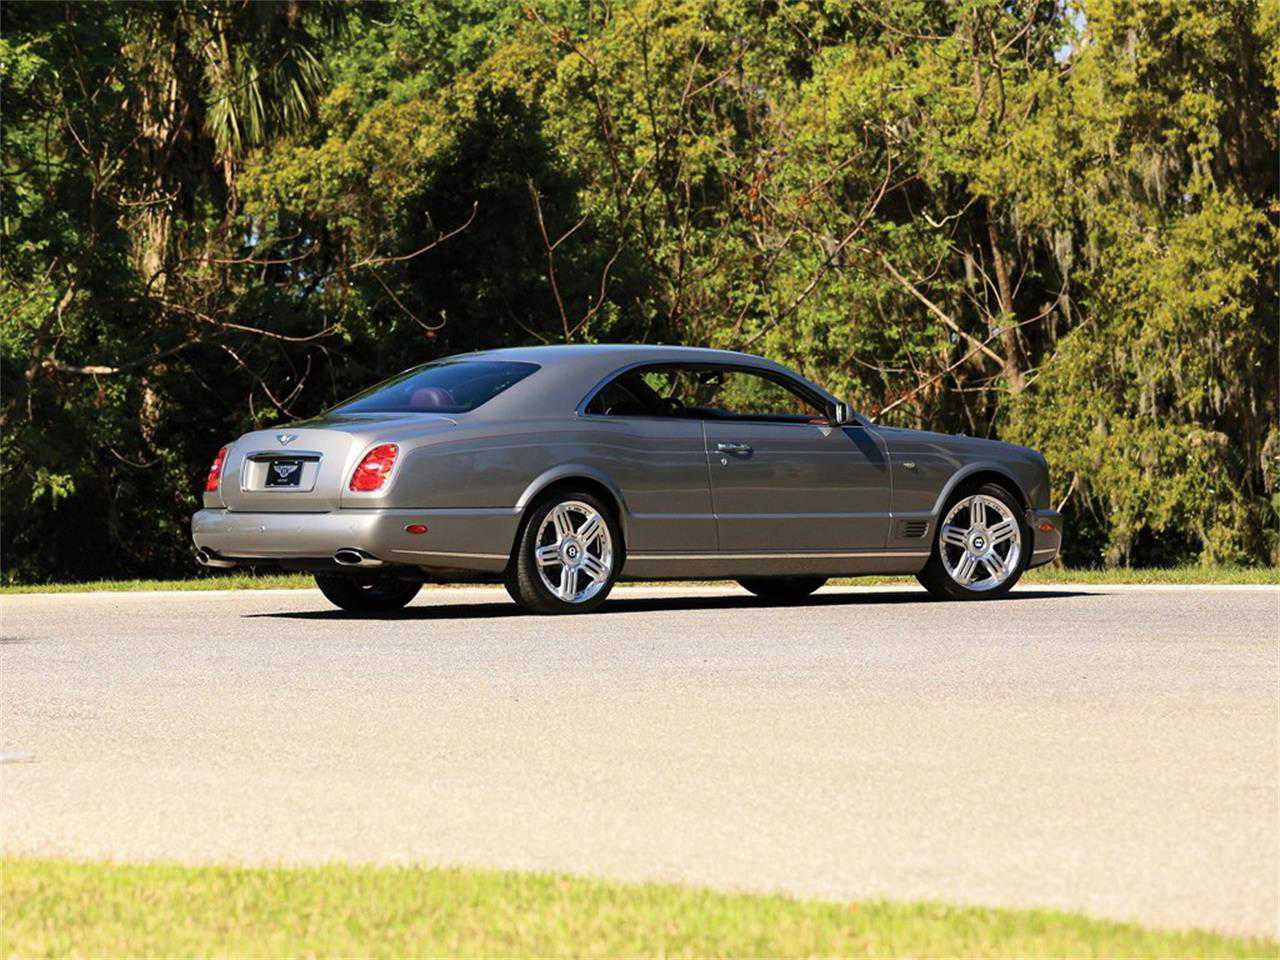 photos ratings bentley specs h the connection overview and prices car review brooklands